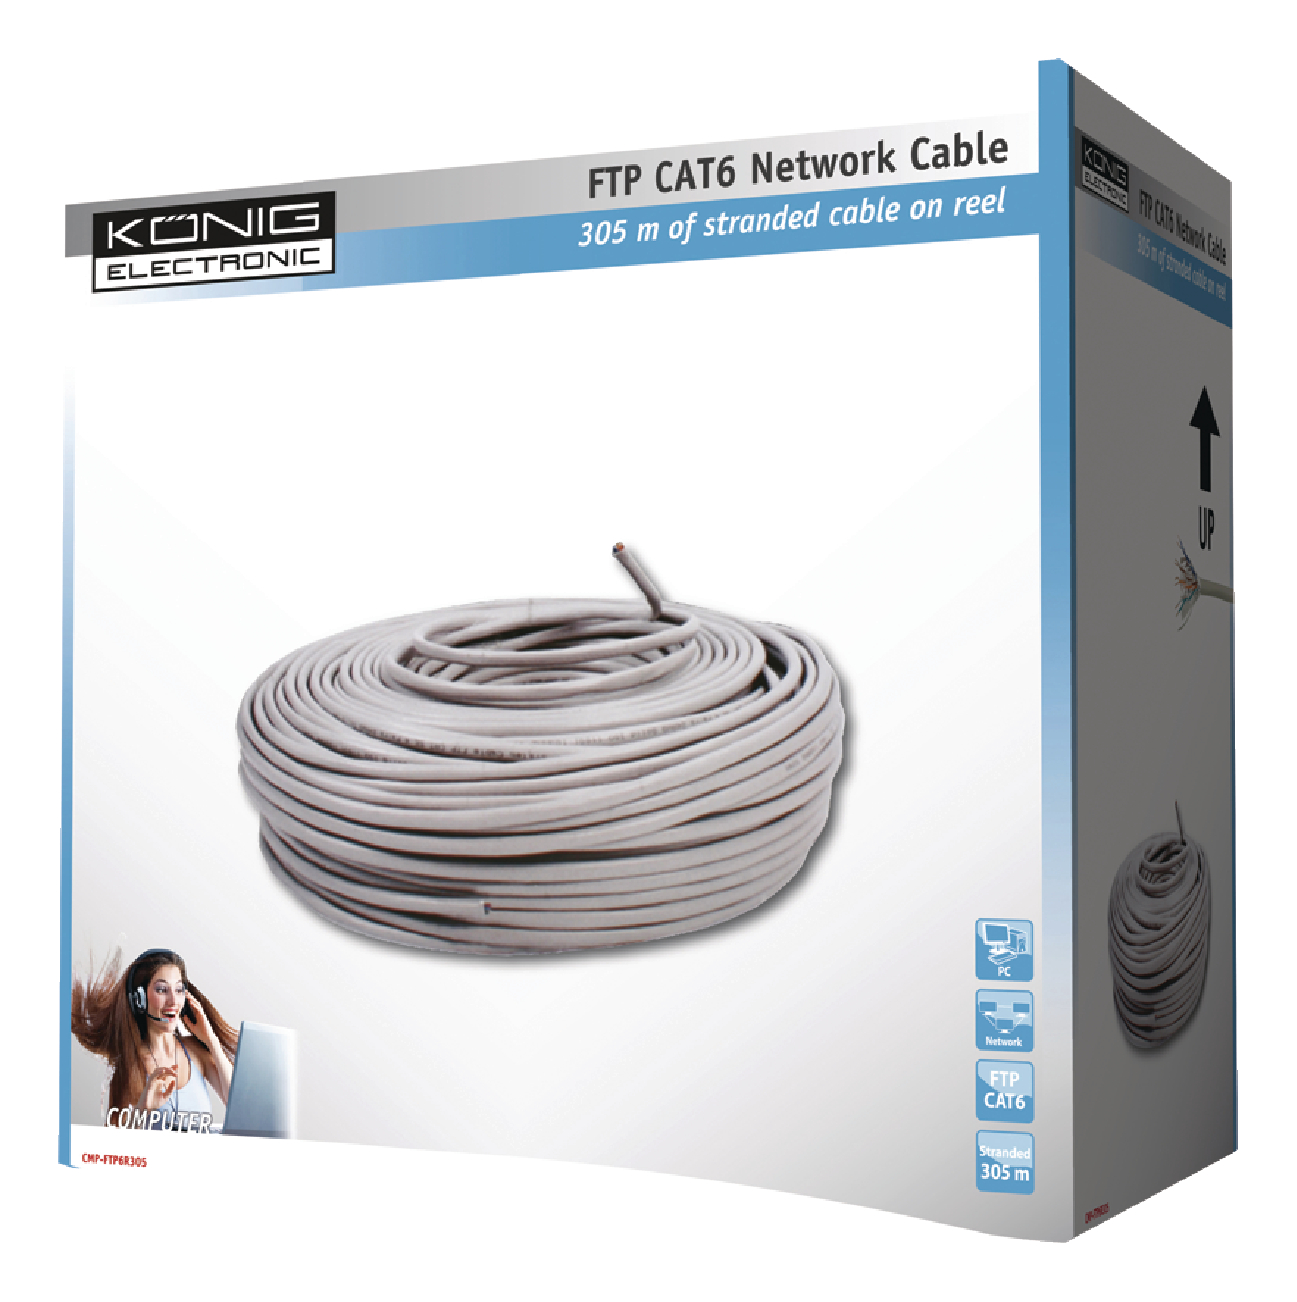 Cmp ftp6r305 knig network cable on reel cat6 futp 305 m grey cmp ftp6r305 knig network cable on reel cat6 futp 305 m sciox Choice Image